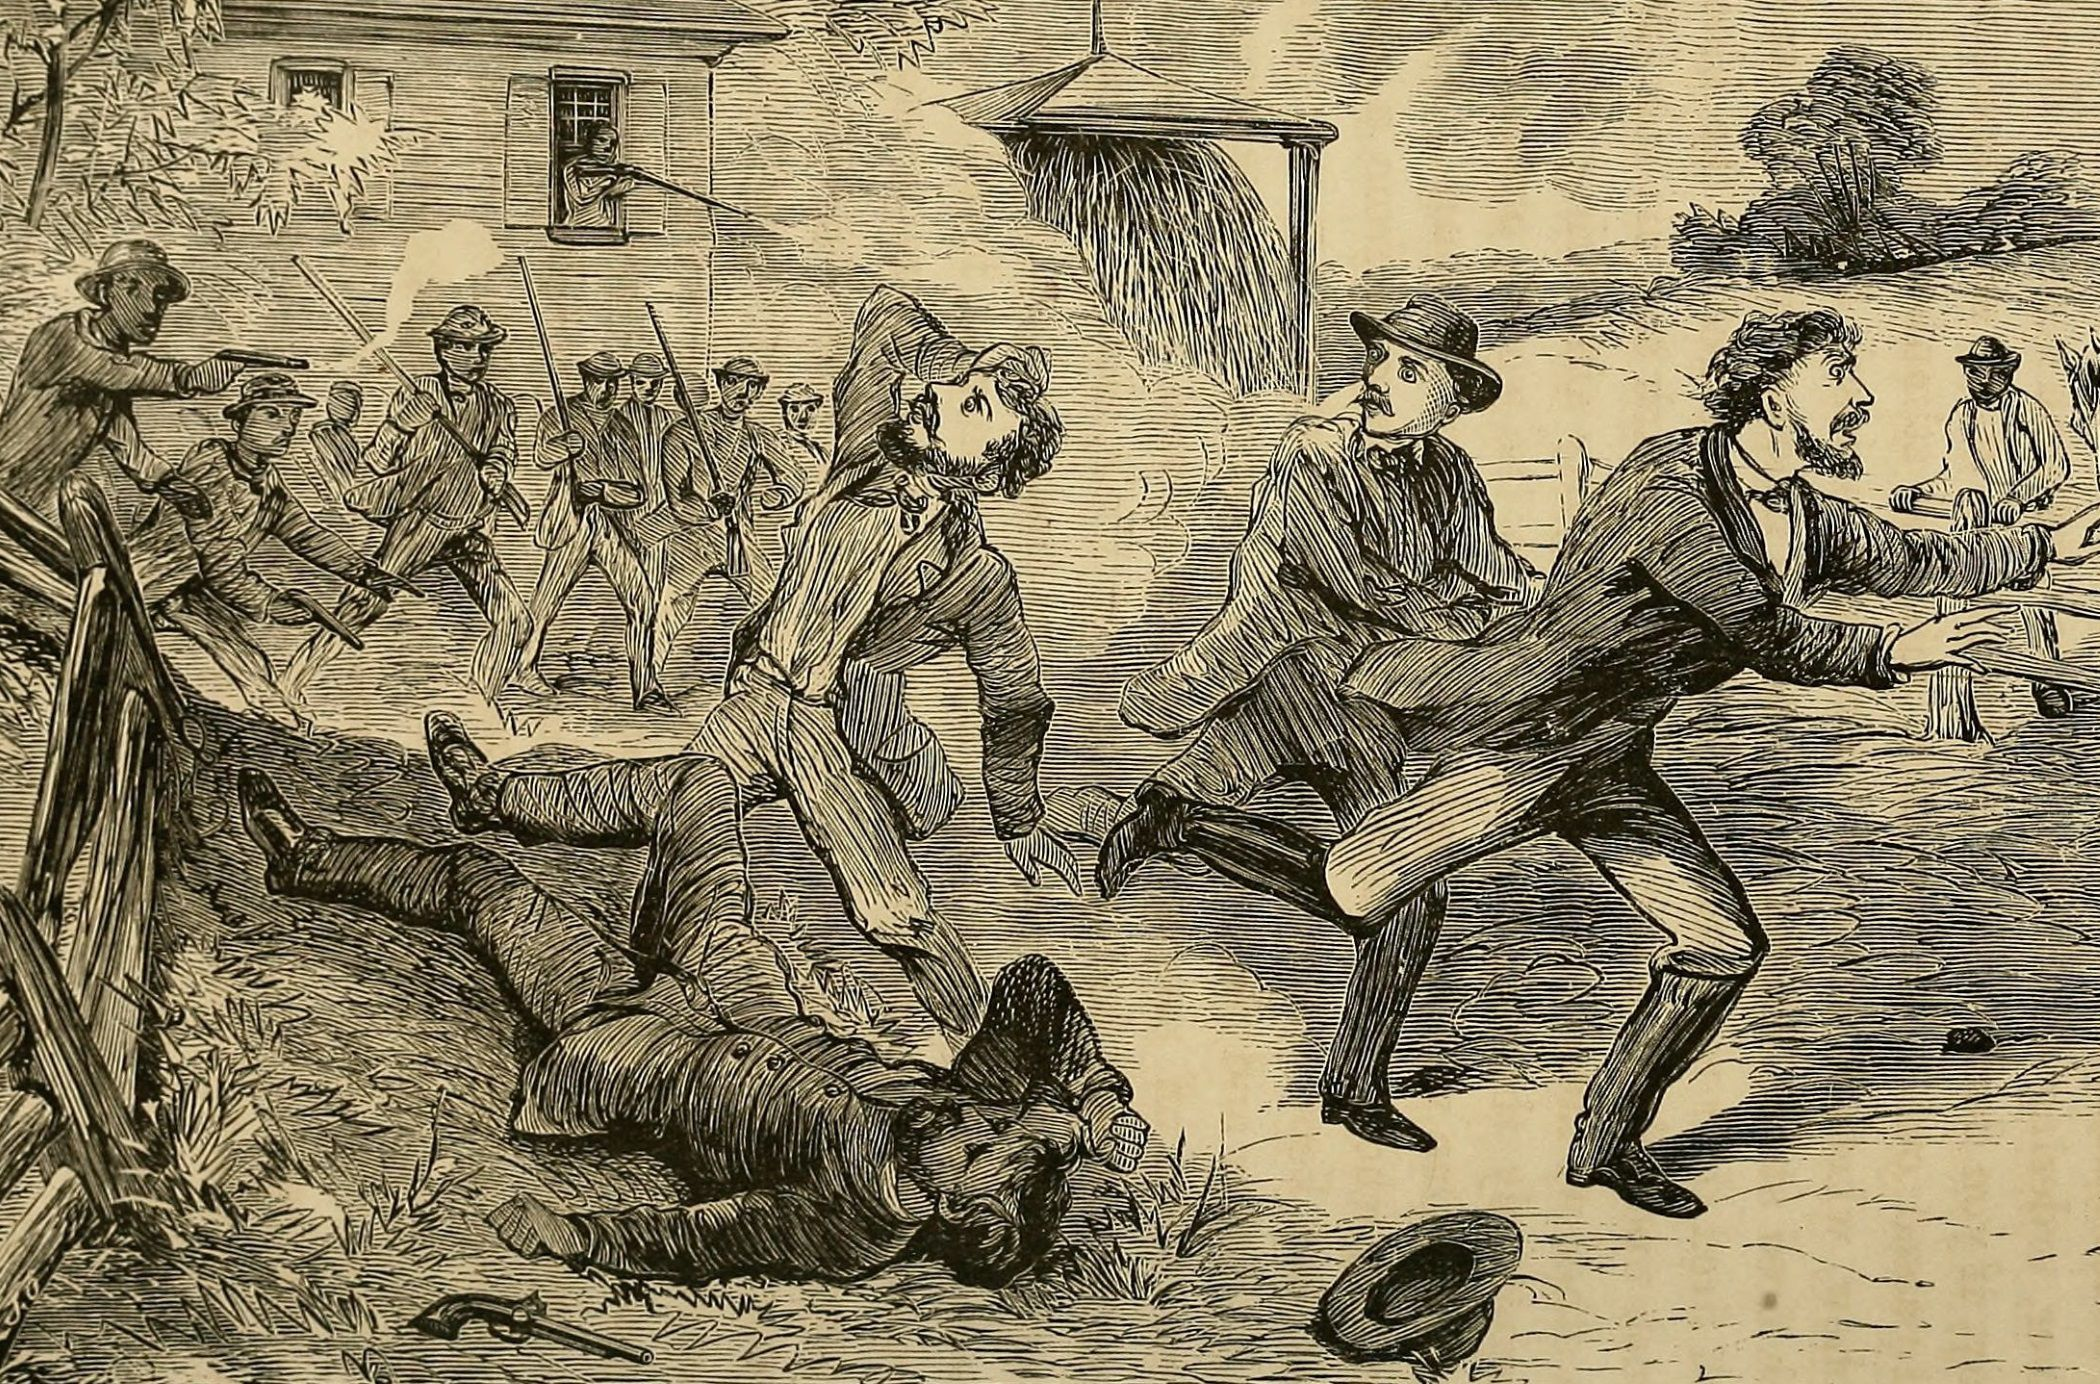 Engraved illustration of the Christiana Riot